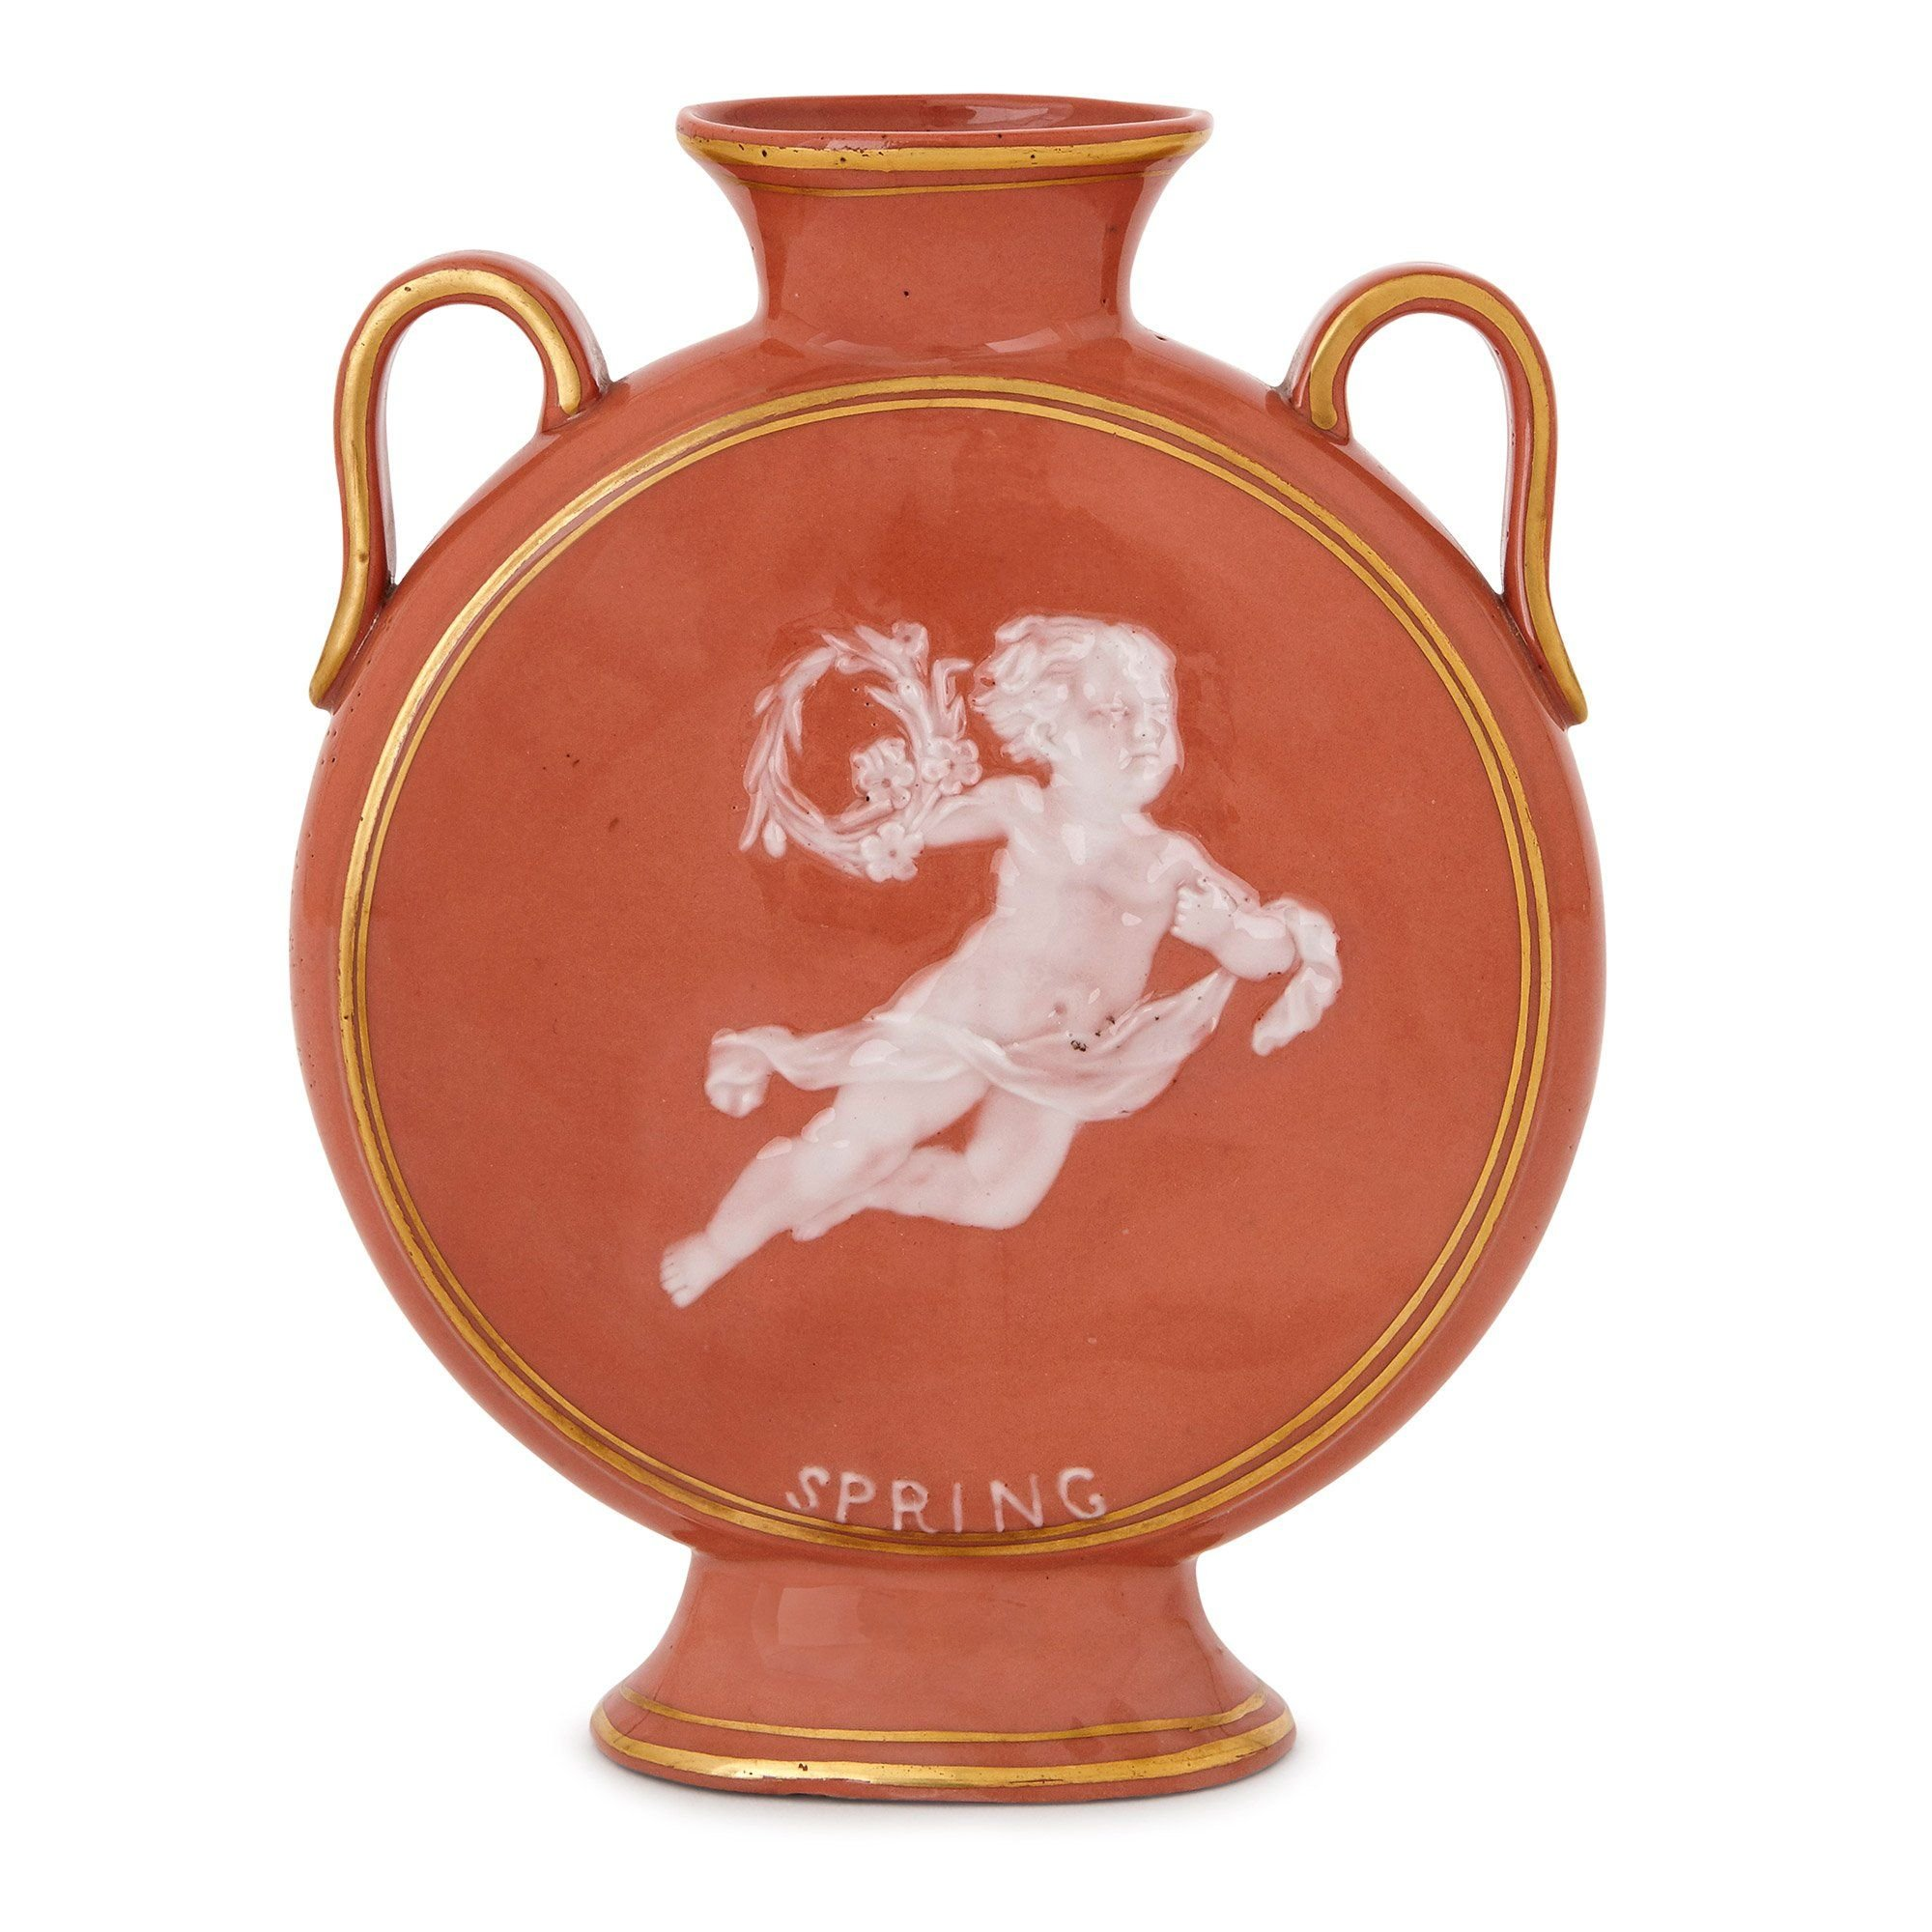 Antique porcelain pate-sur-pate moon vase with cherub | Mayfair Gallery